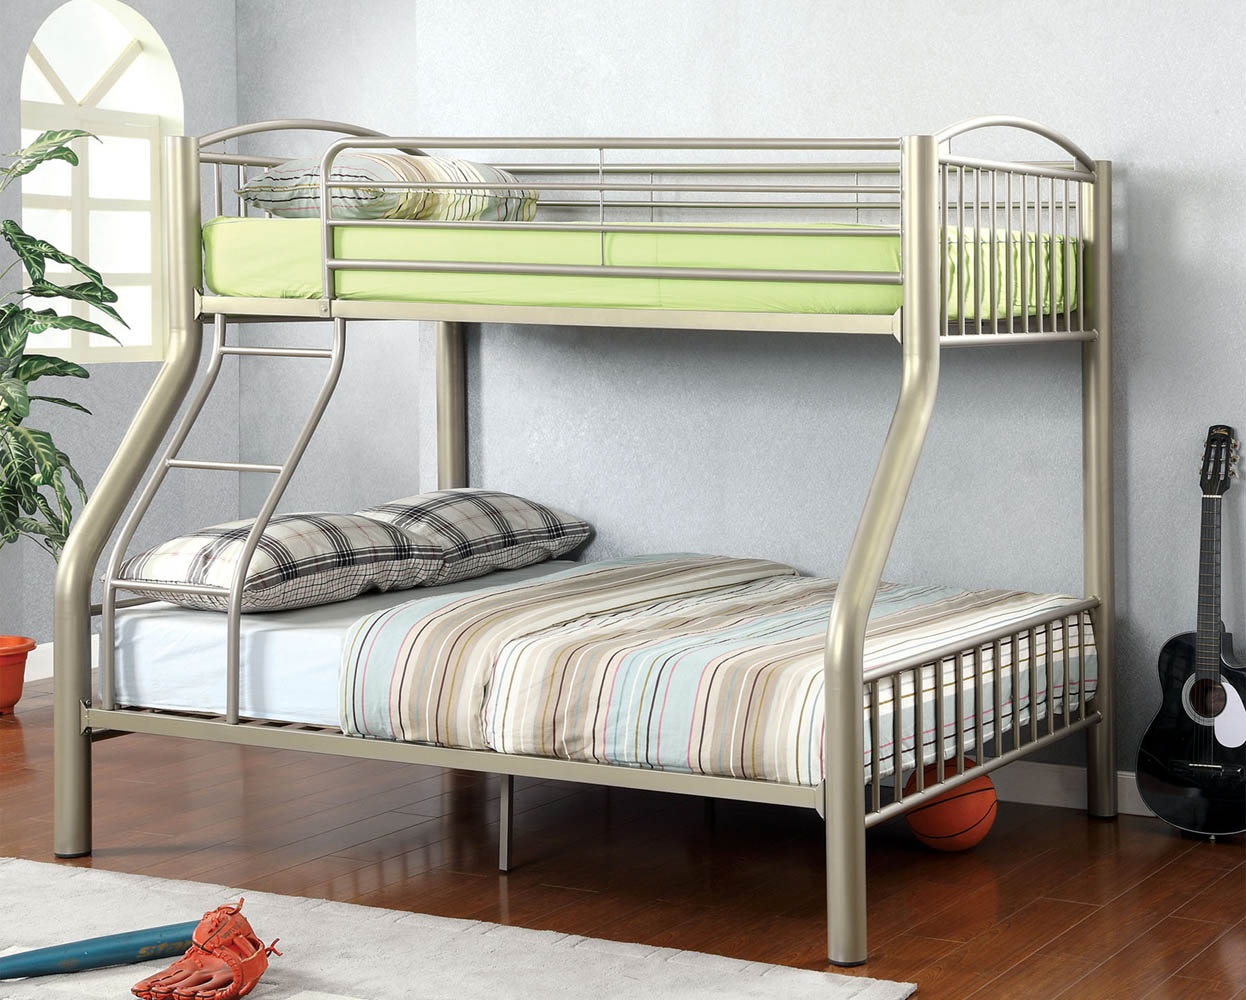 twin full metal bunk bed. Black Bedroom Furniture Sets. Home Design Ideas